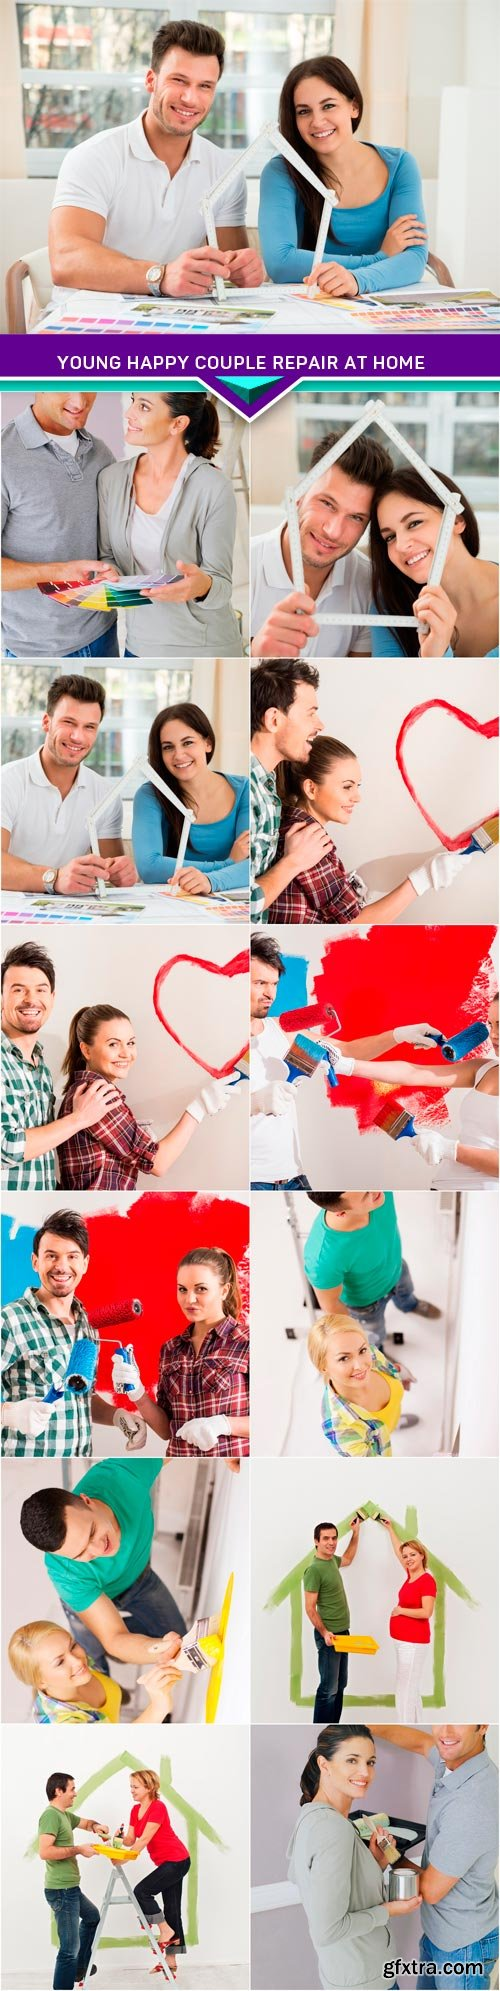 Young happy couple repair at home 12x JPEG